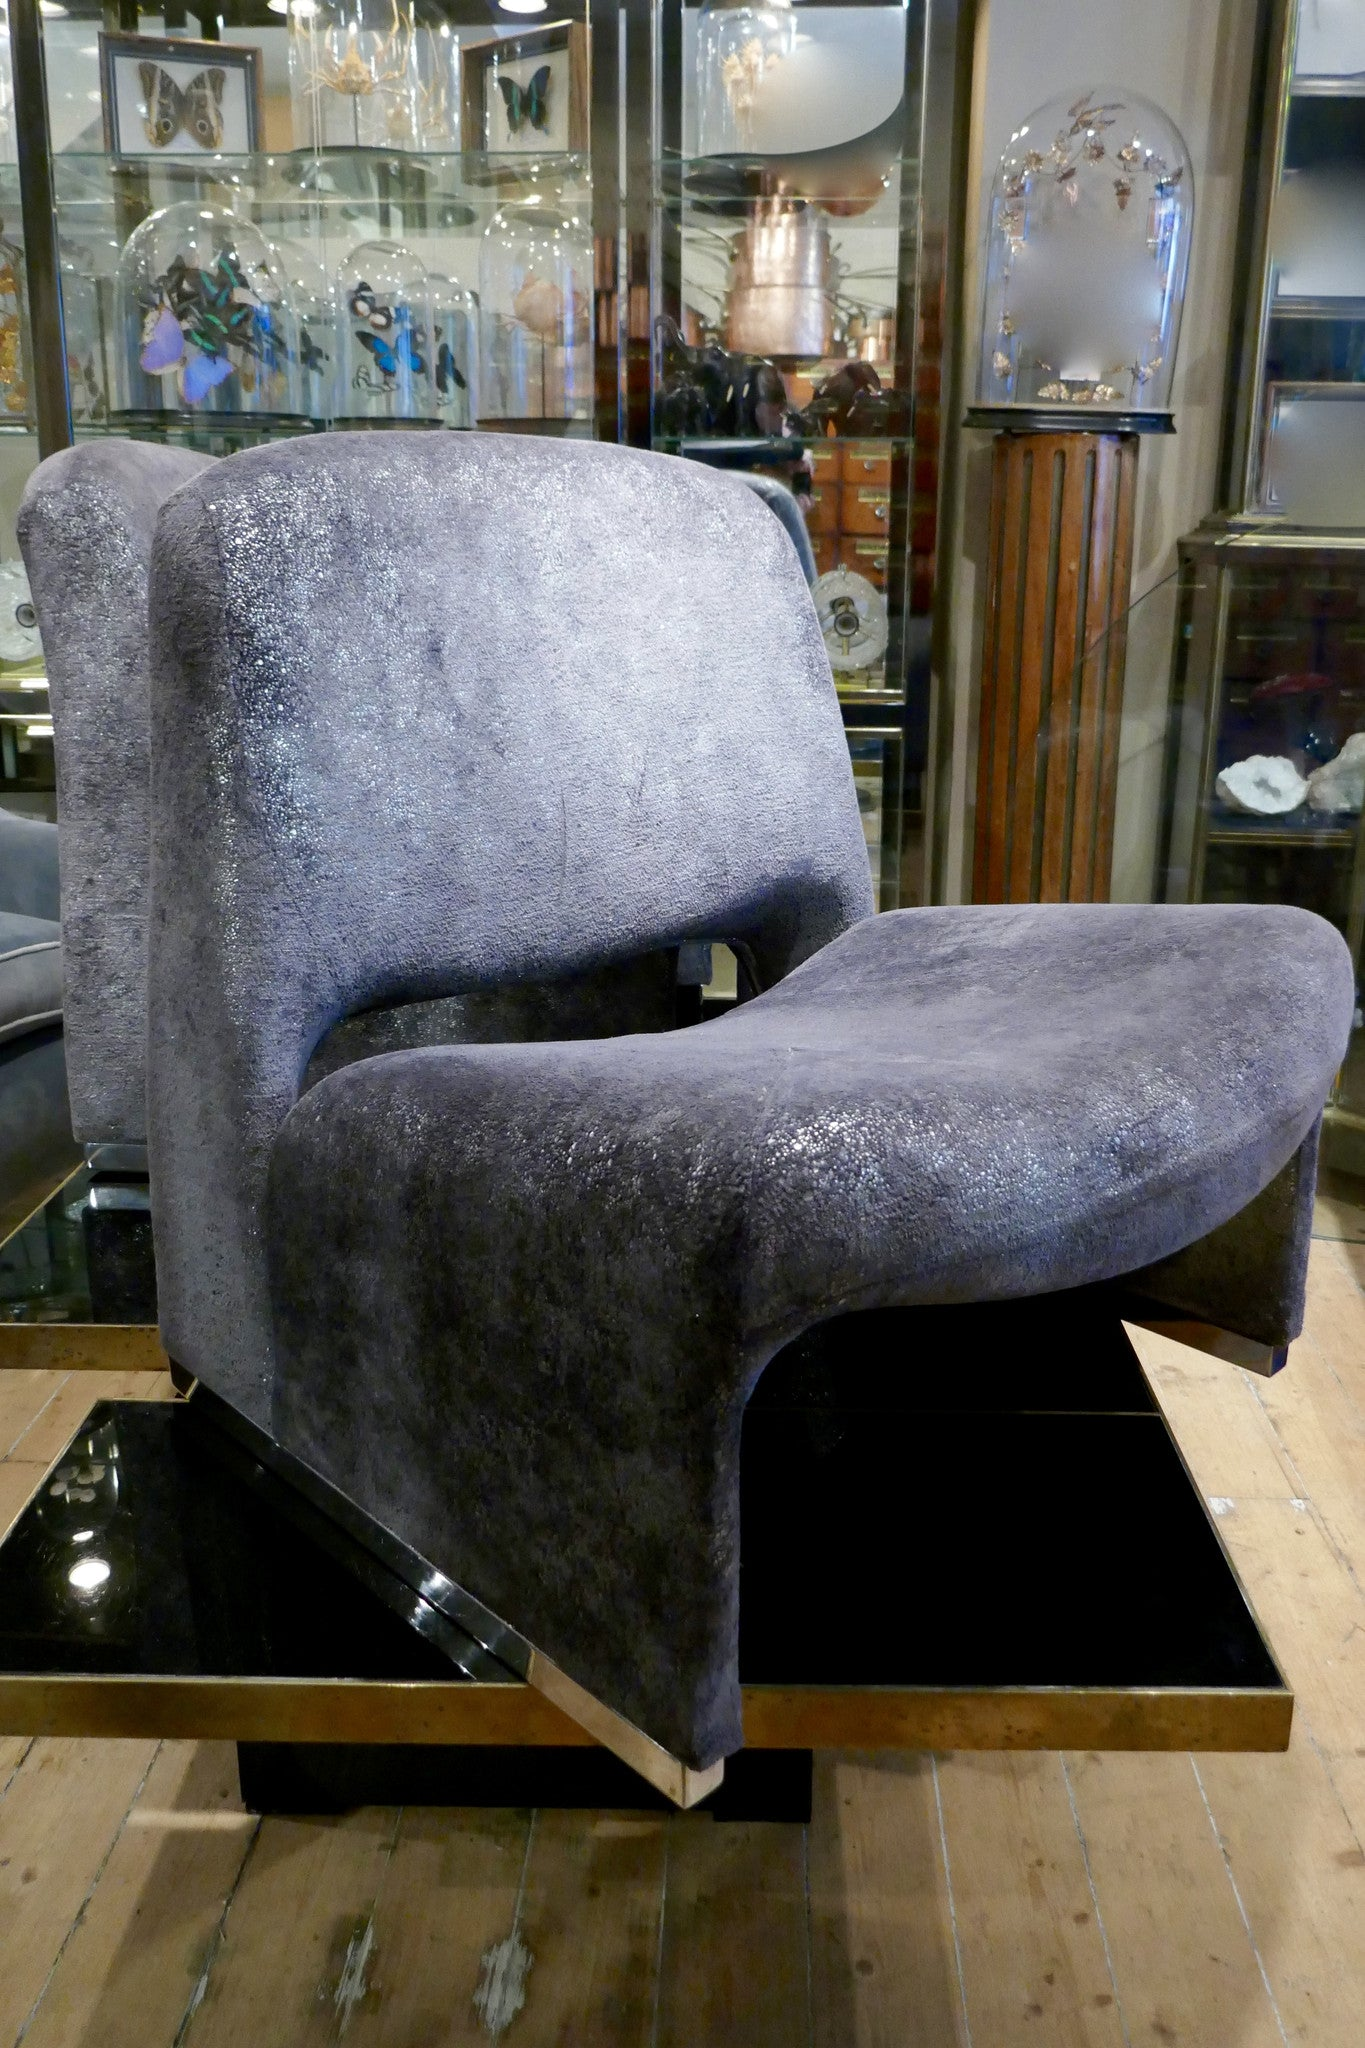 X Pair of French 1970s futuristic chairs re-upholstered in Romo metallic fabric.